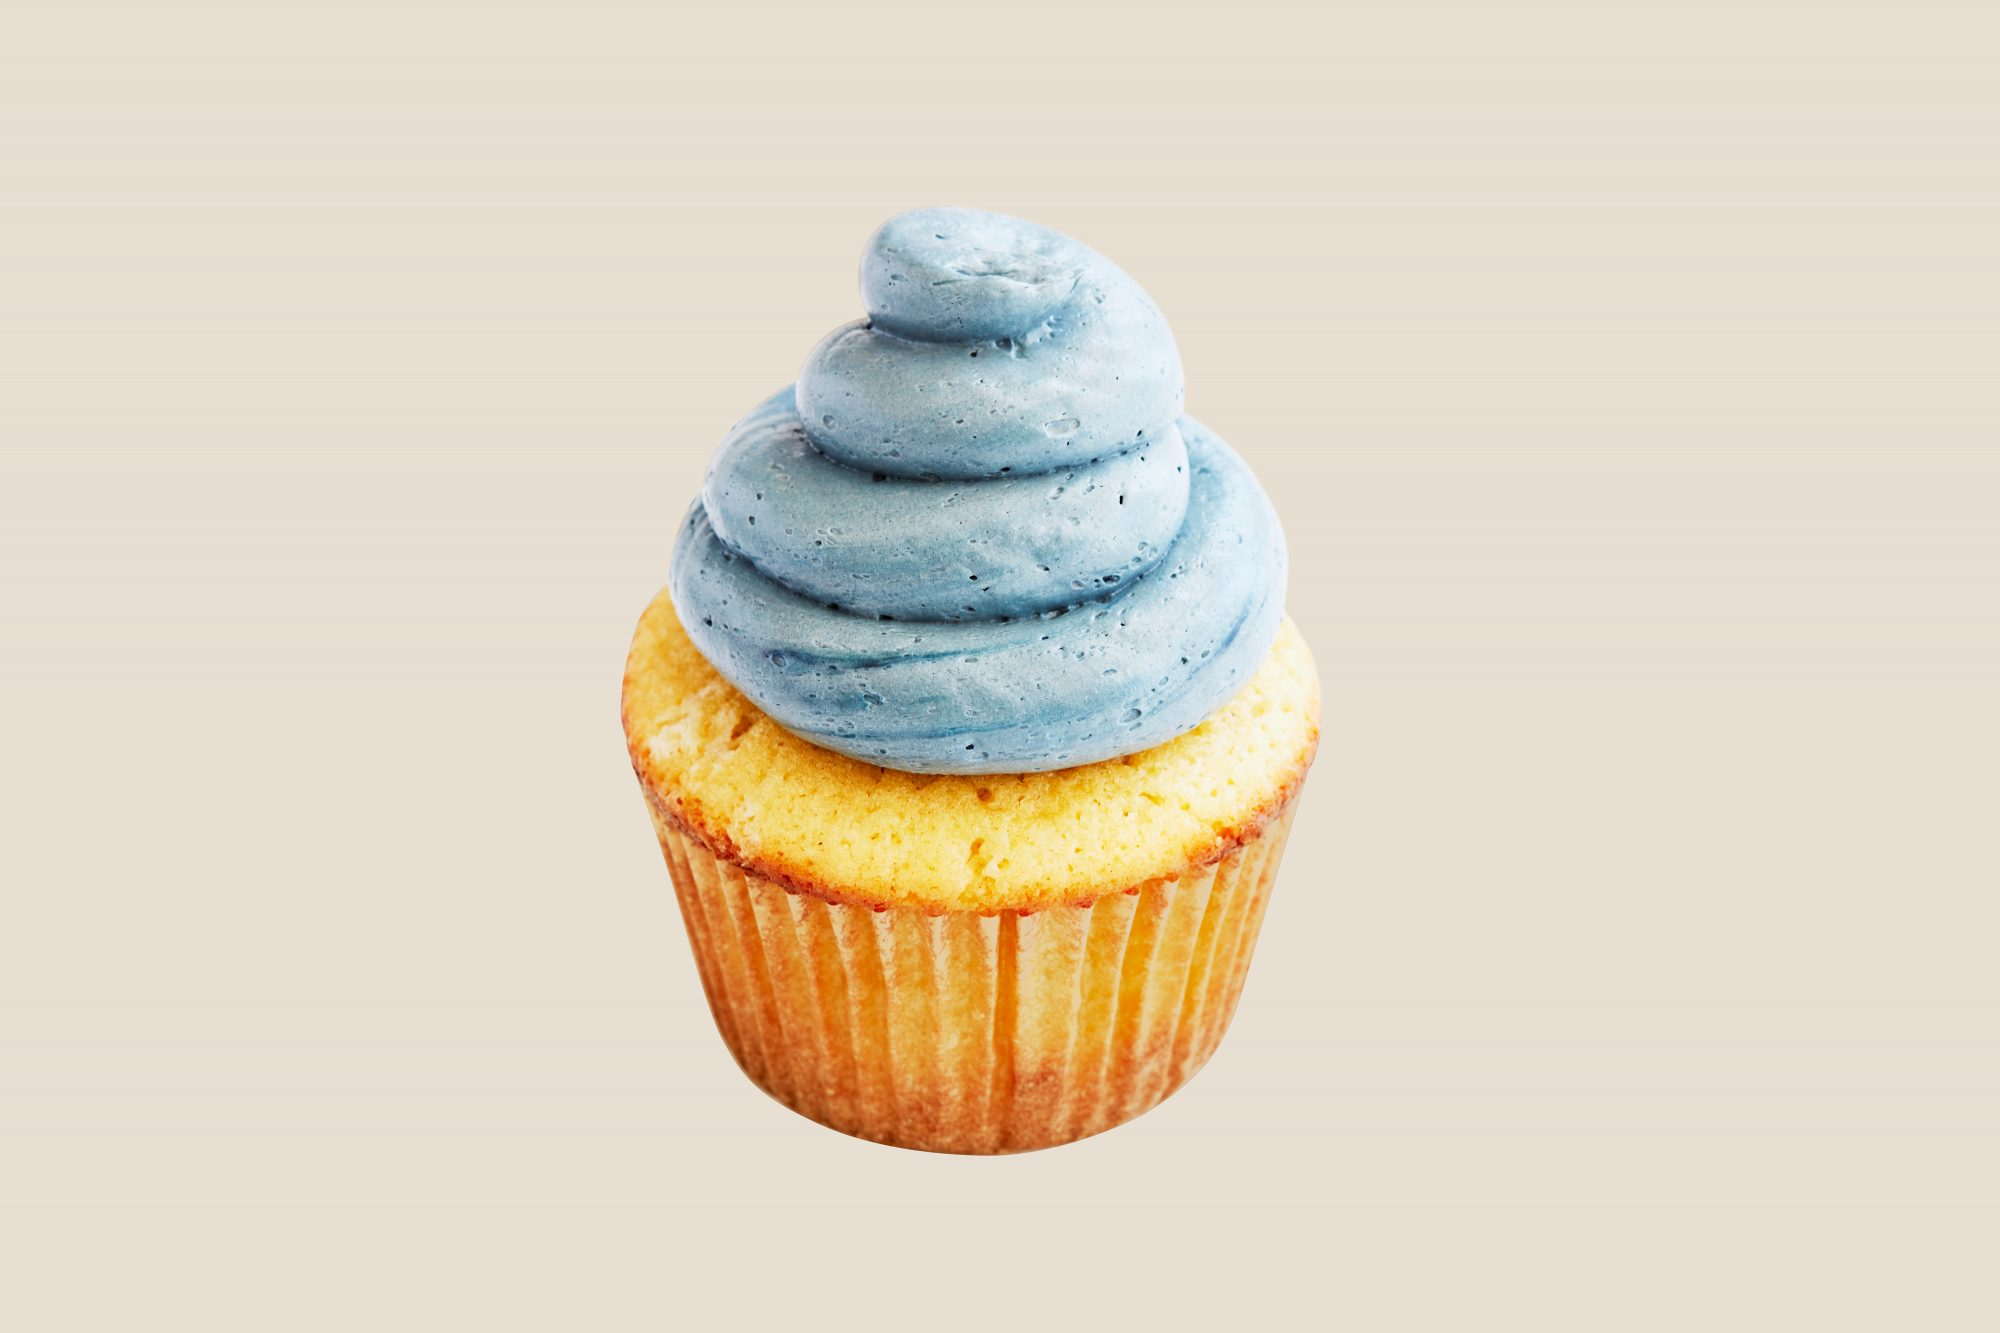 blue frosting piping on cupcake